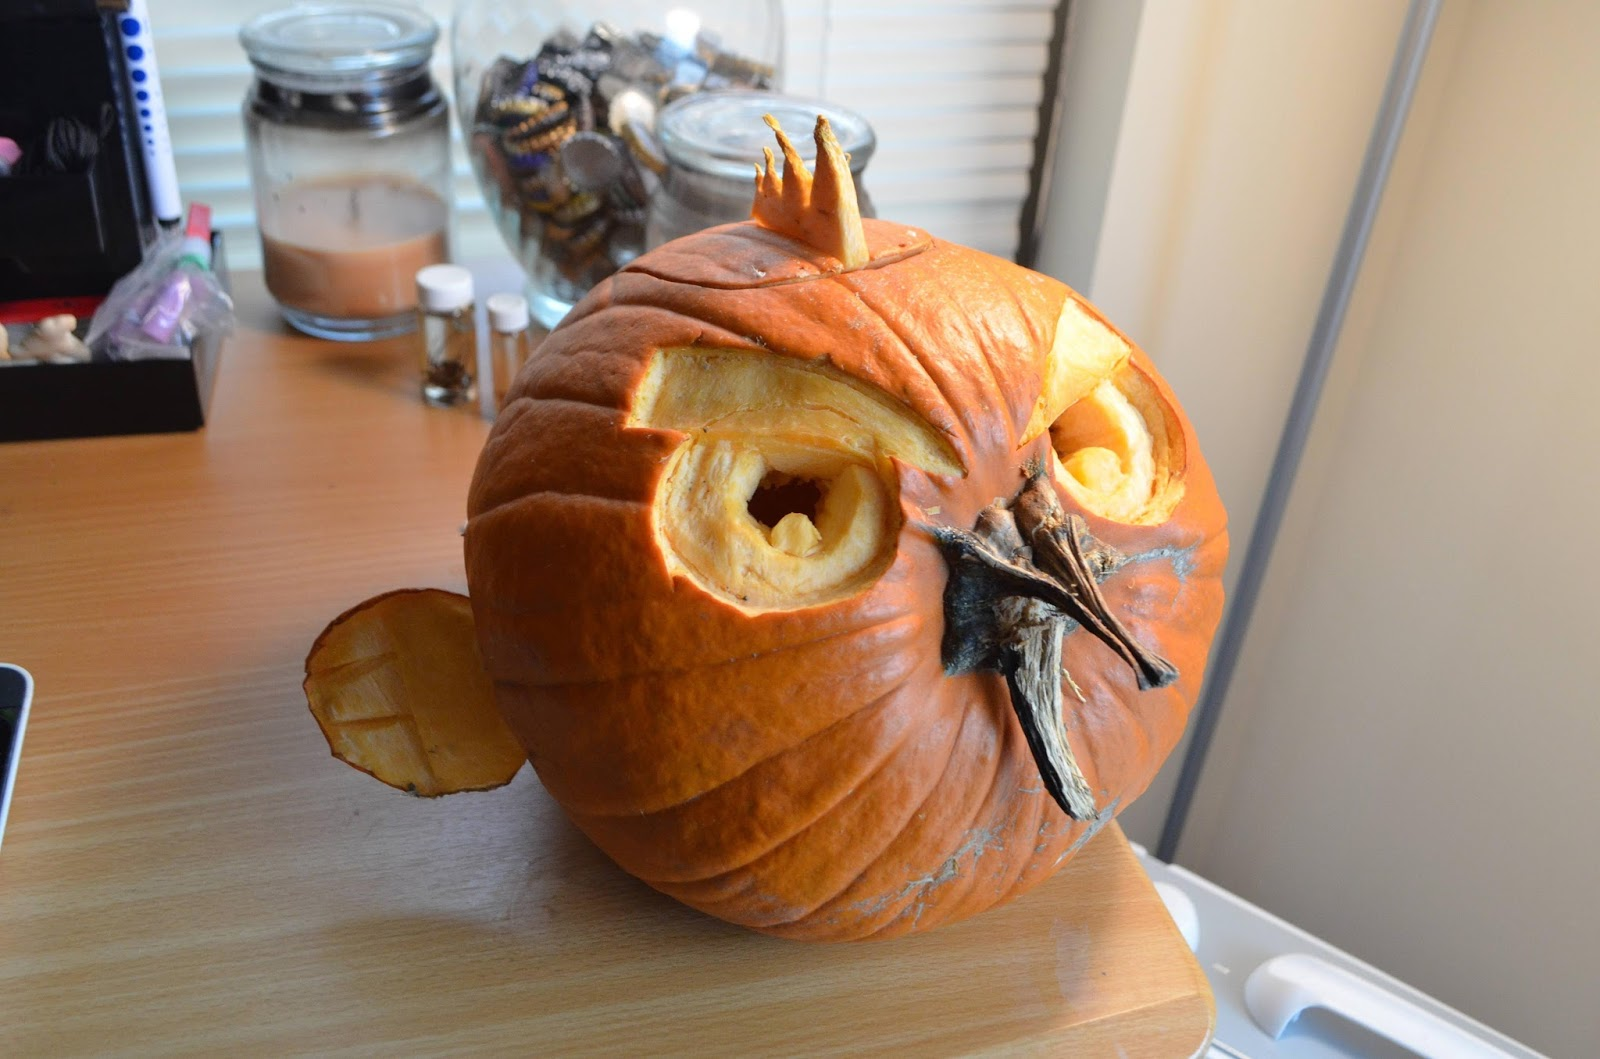 Pumpkin Carving Ideas for Halloween 2017: Still More Awesome ...